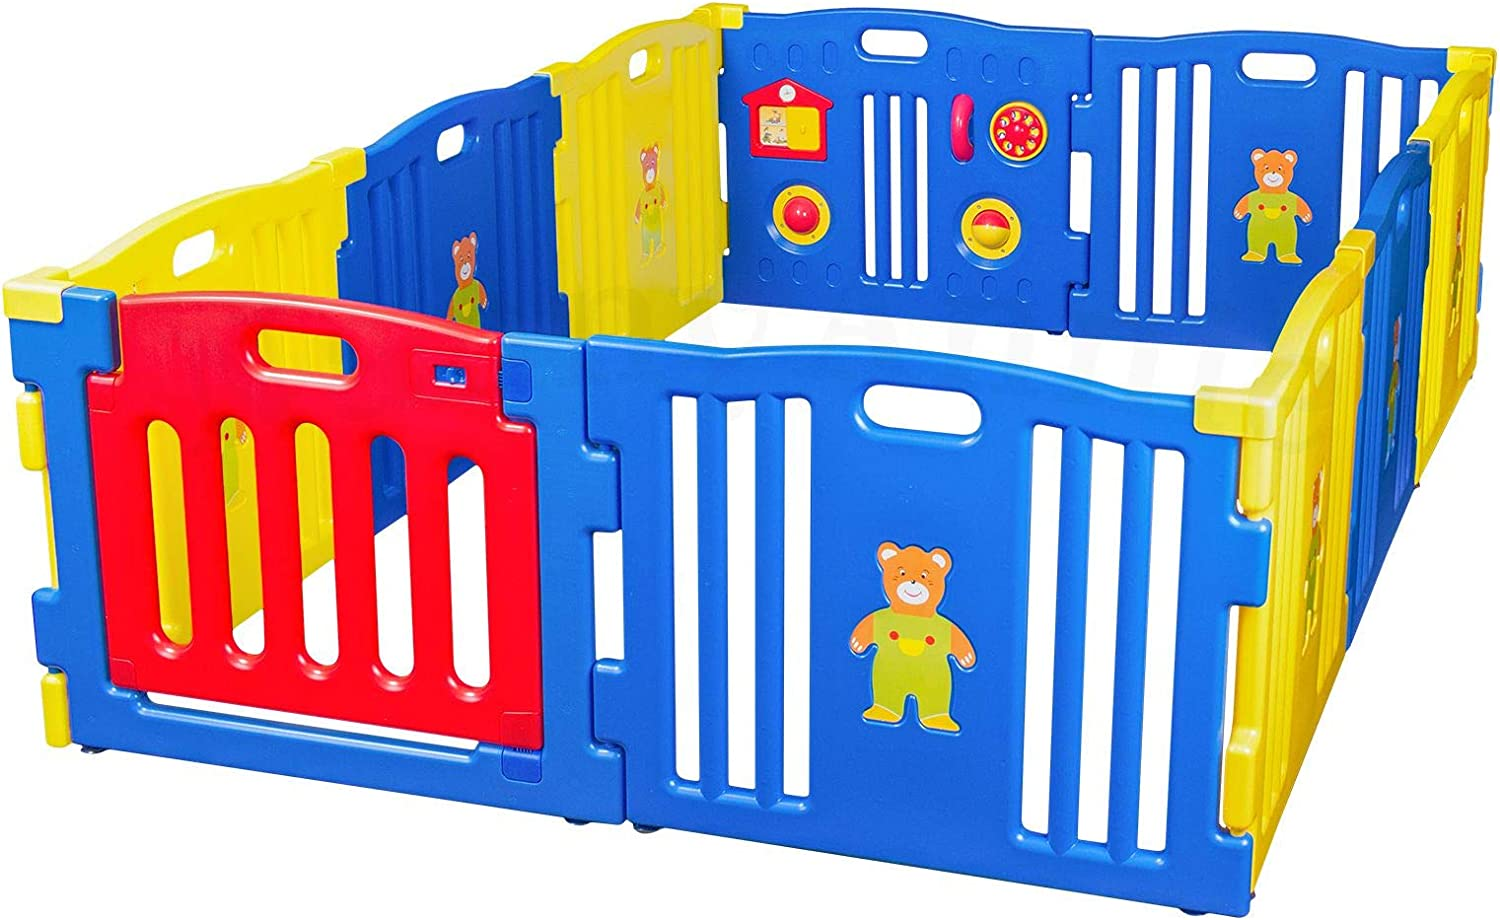 Giant Baby Playpen - bluee 10 Panels with Gate